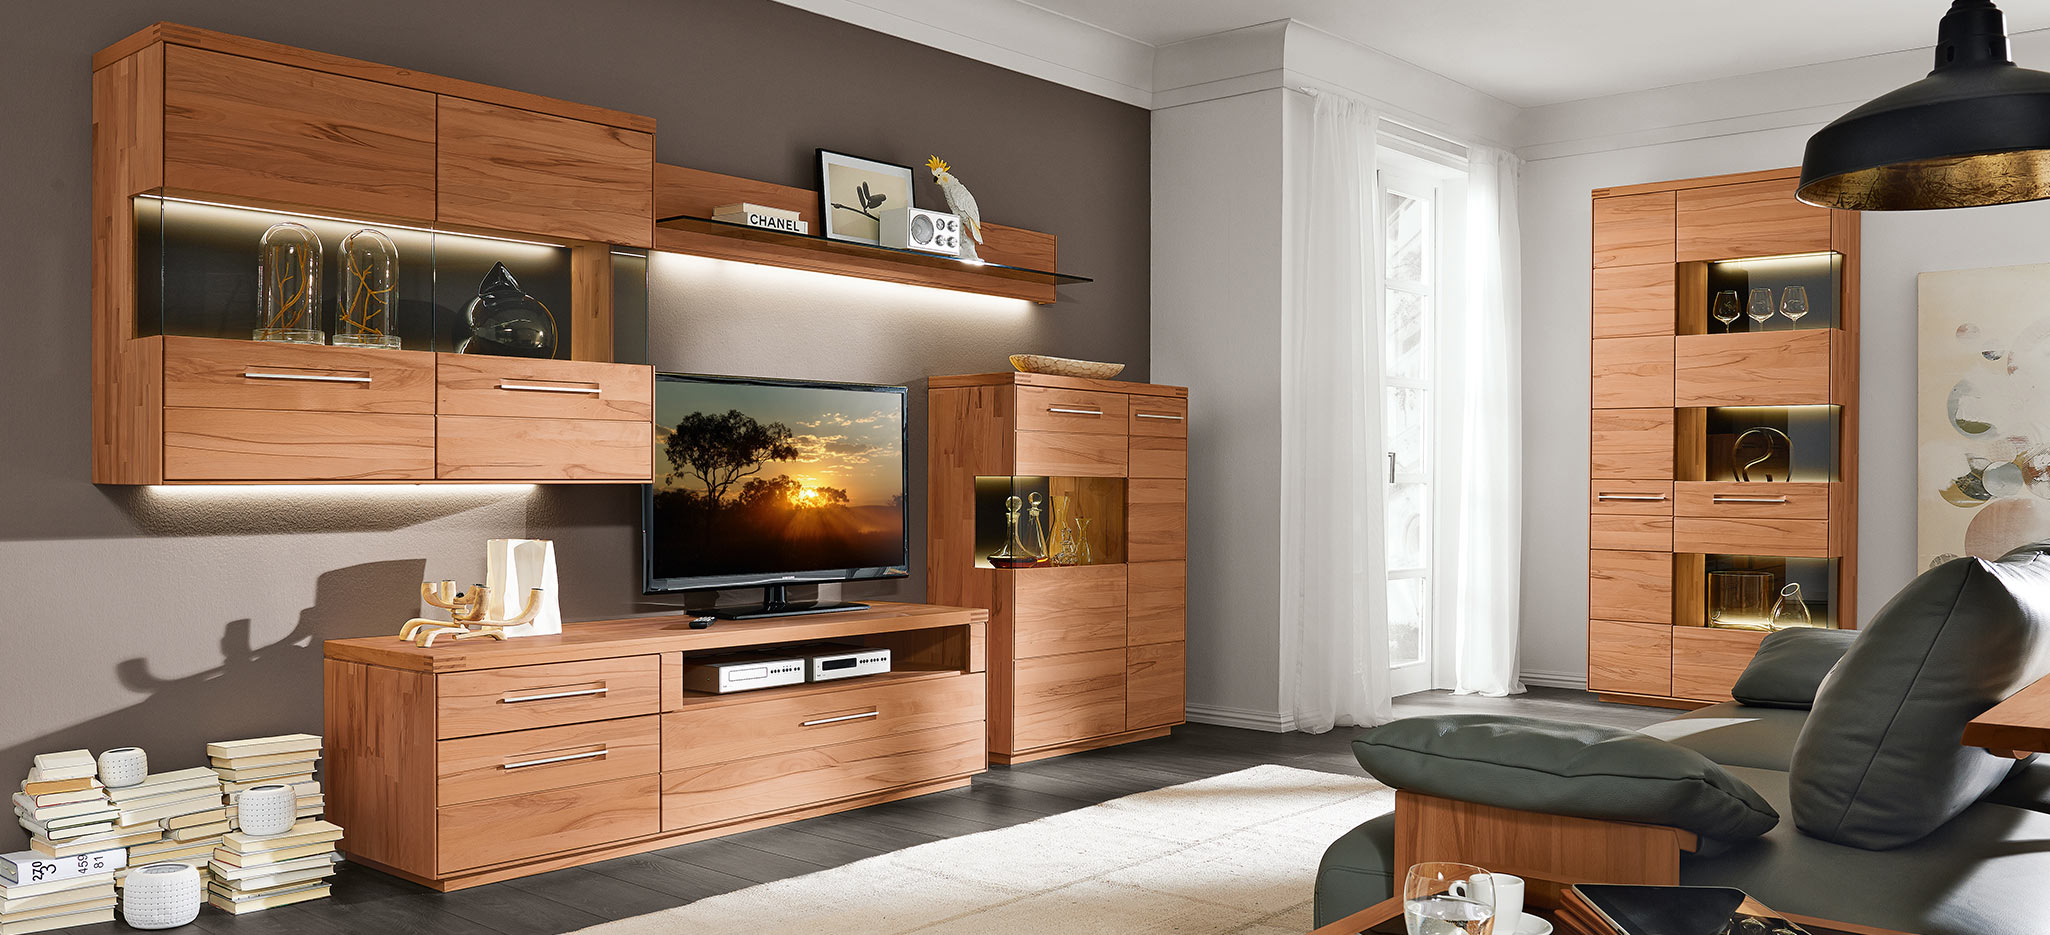 hochwertige massivholzk che vicenca hier auf. Black Bedroom Furniture Sets. Home Design Ideas